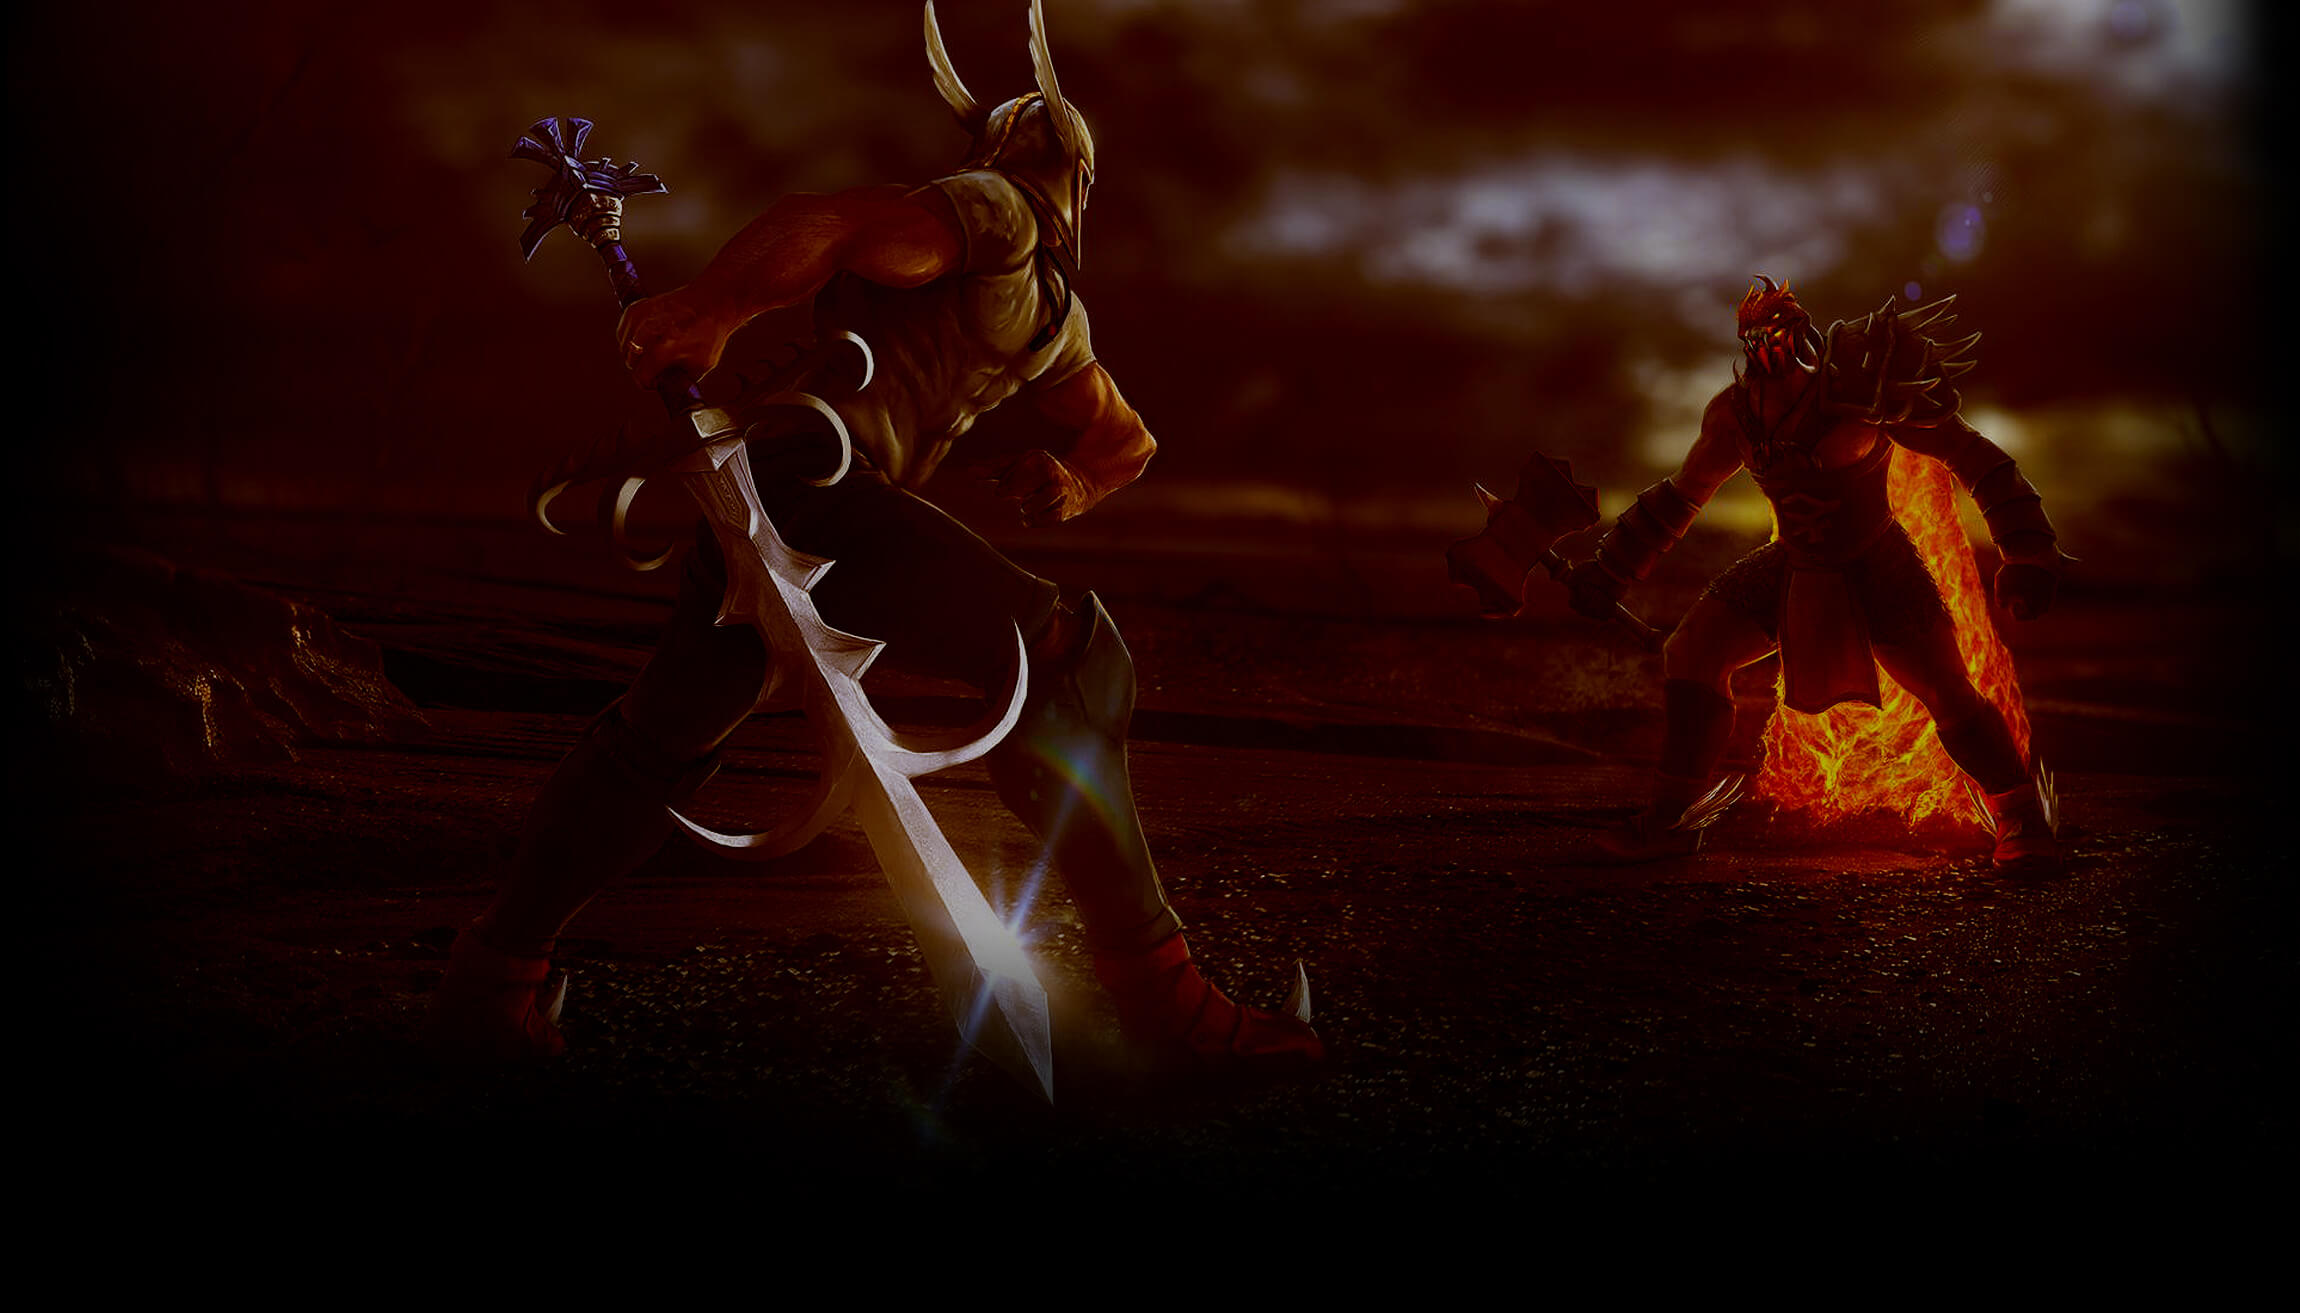 Bing Animated Wallpaper Alora Rsps The Best Runescape Private Server